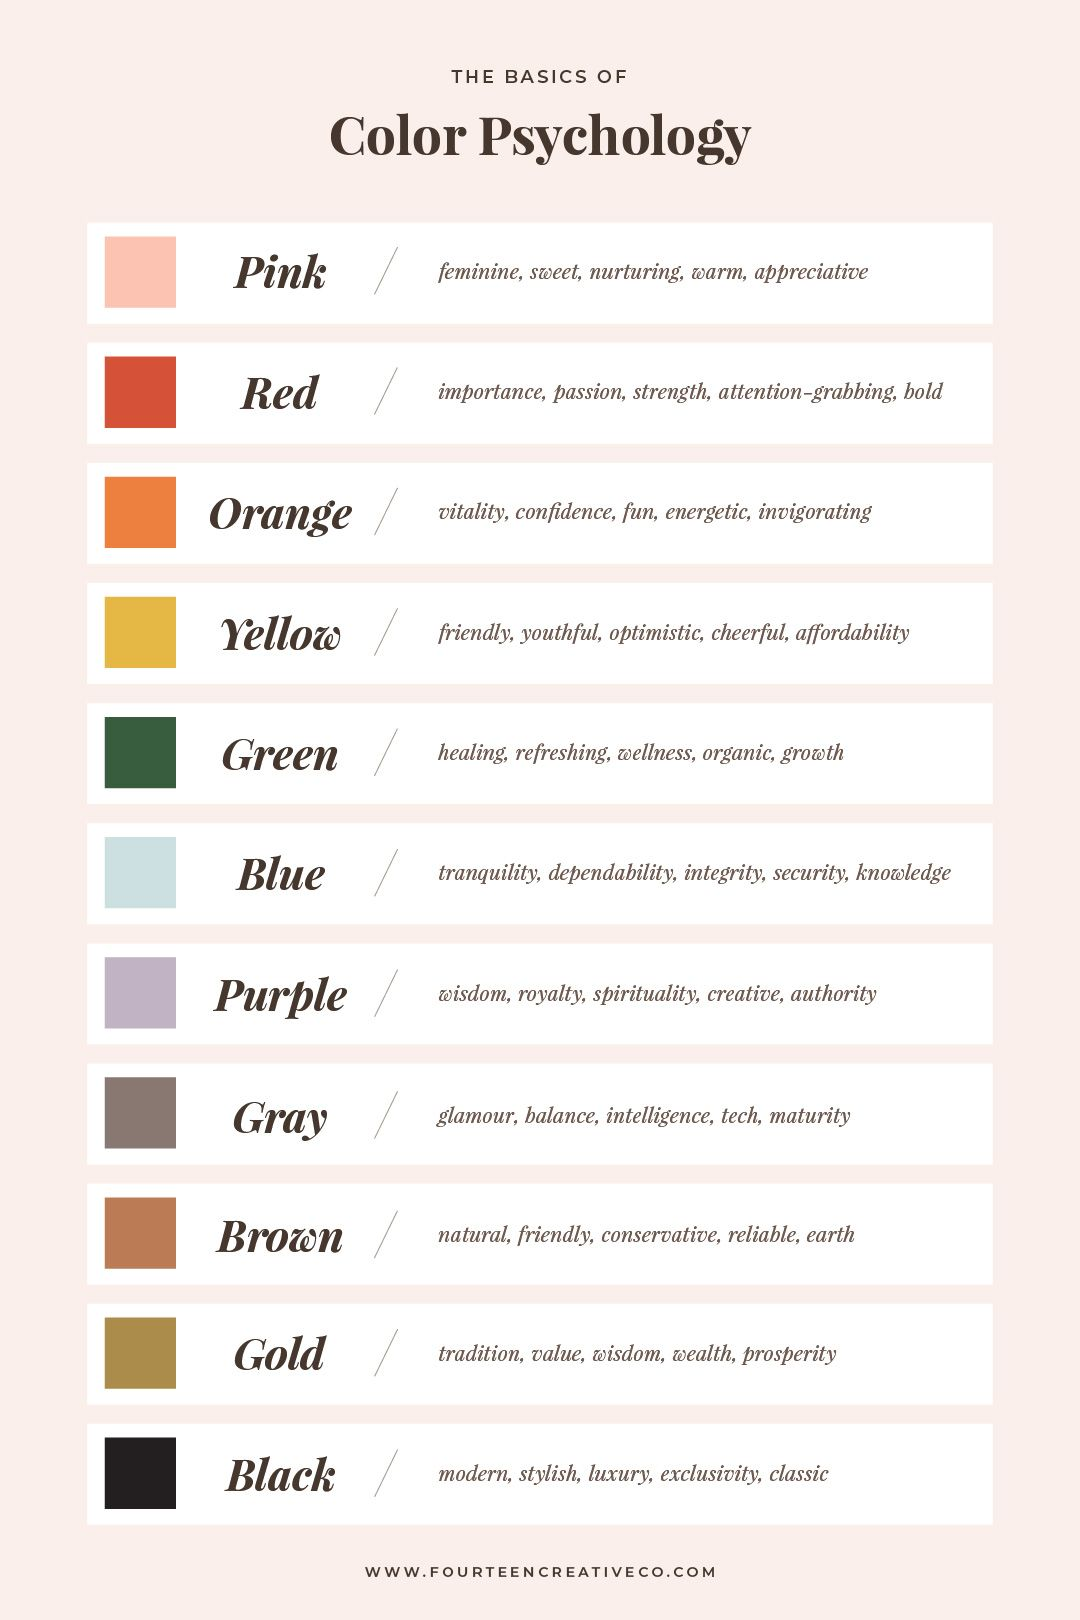 How to Choose the Best Colors for Your Brand